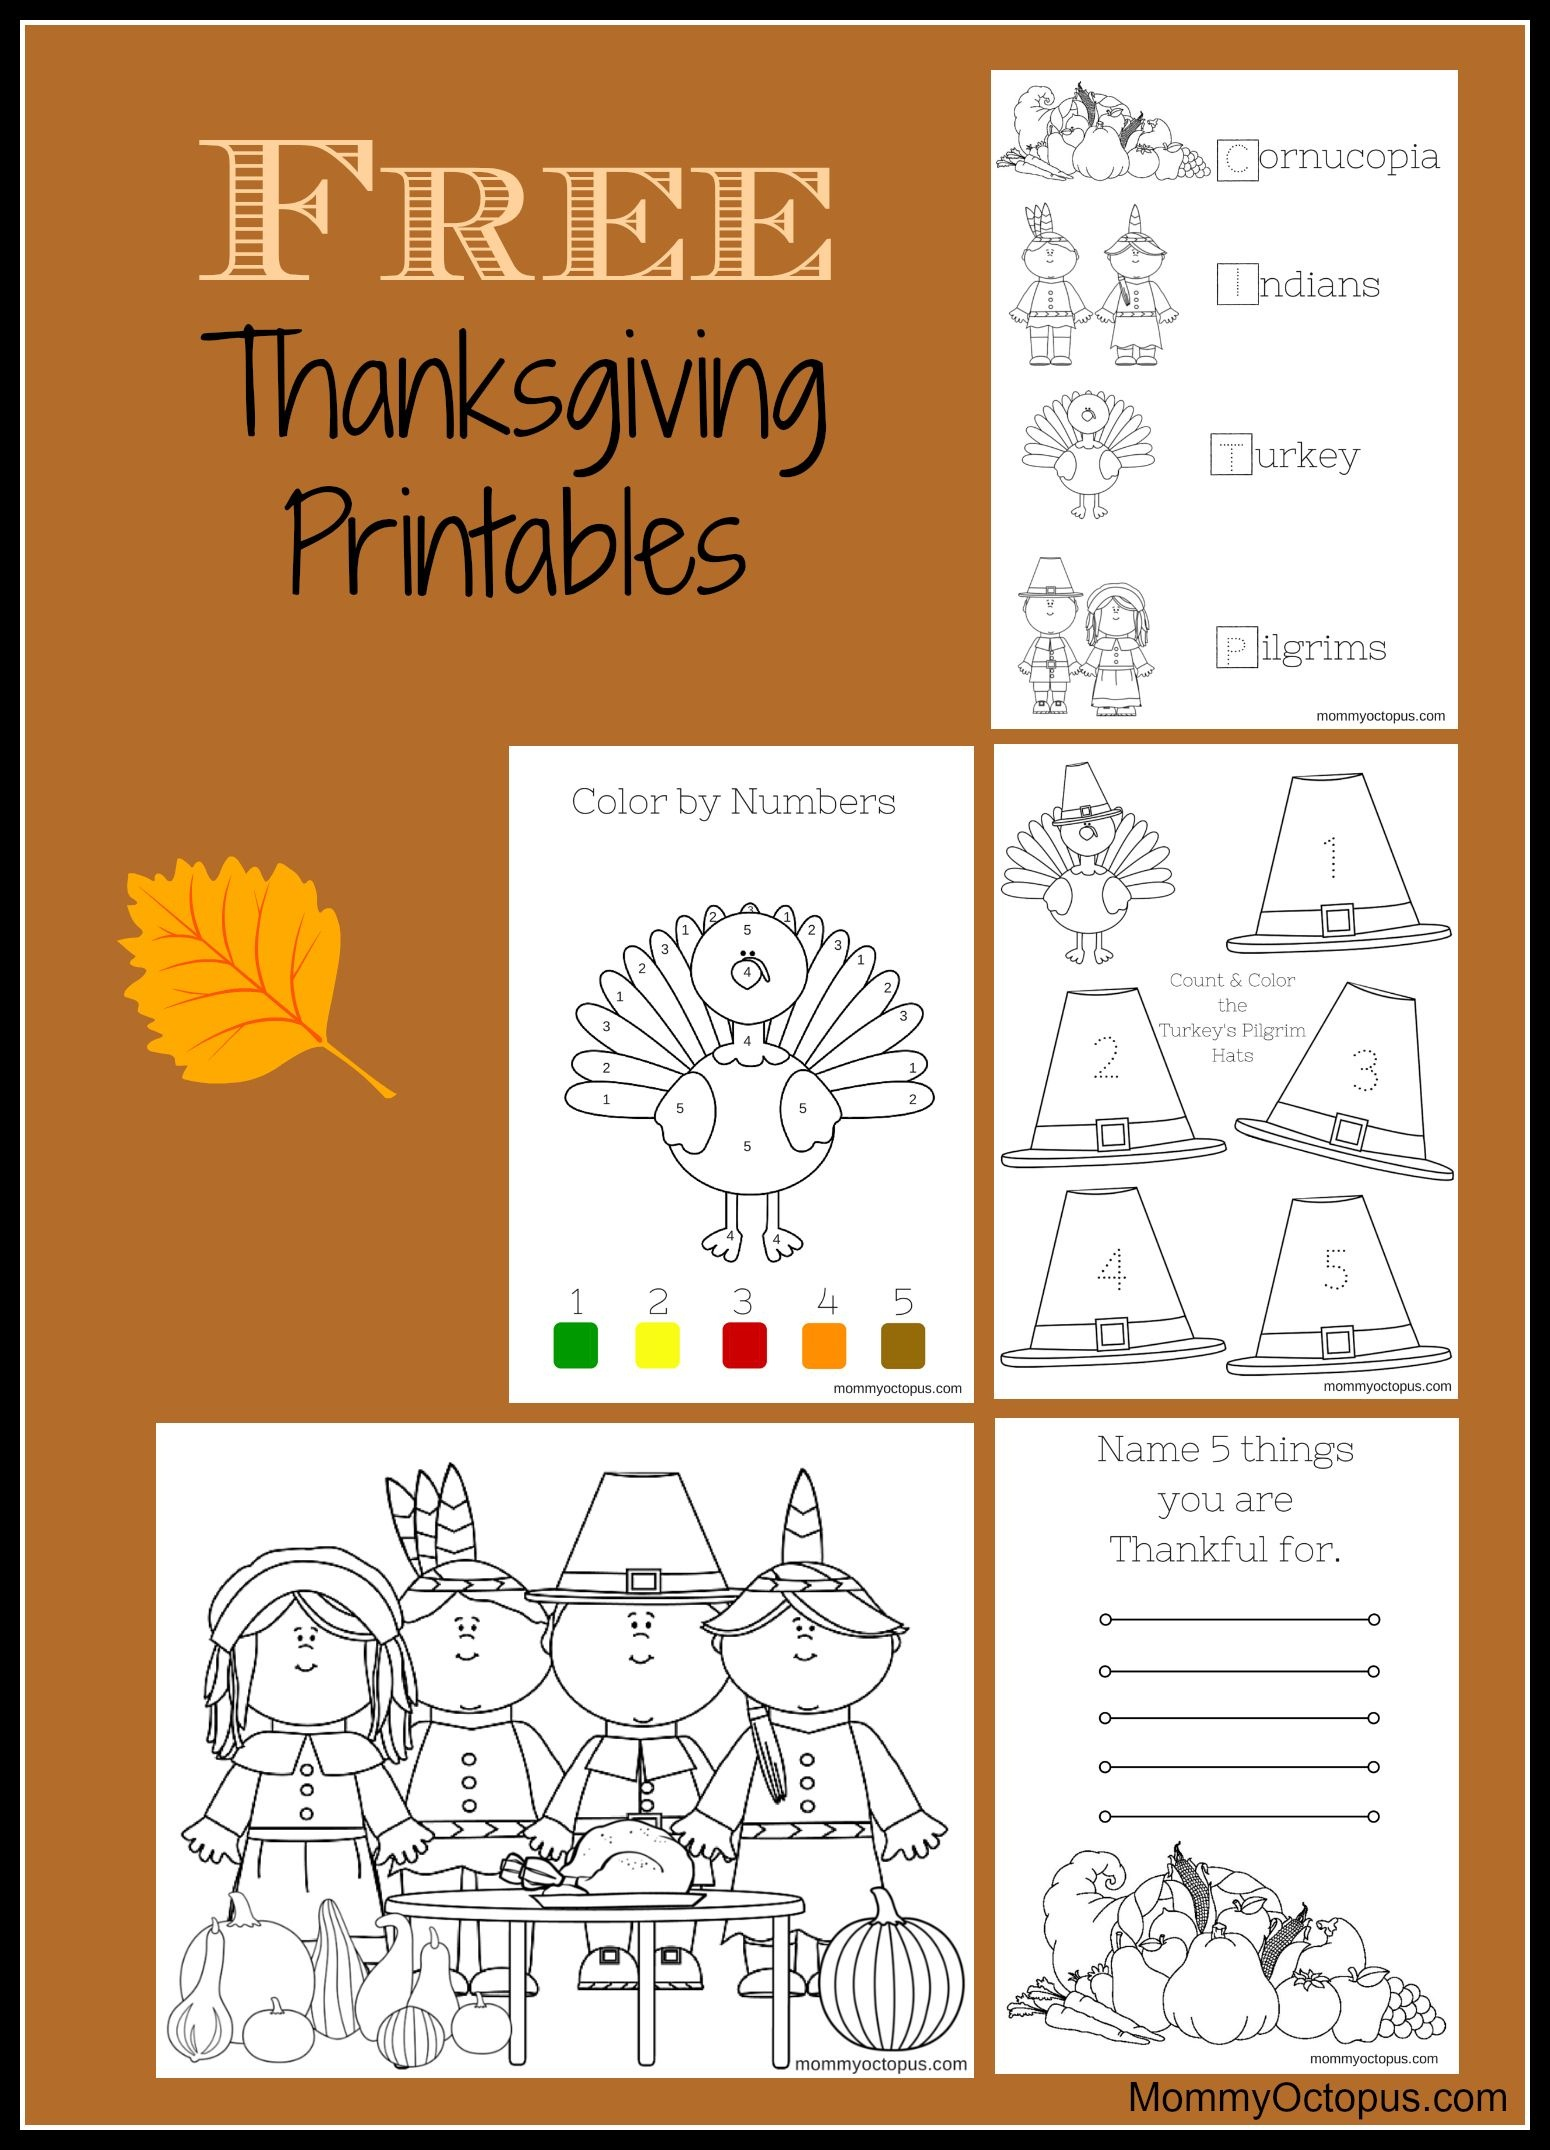 Free Thanksgiving Printable Activity Sheets!   Thanksgiving & Fall - Free Printable Thanksgiving Games For Adults